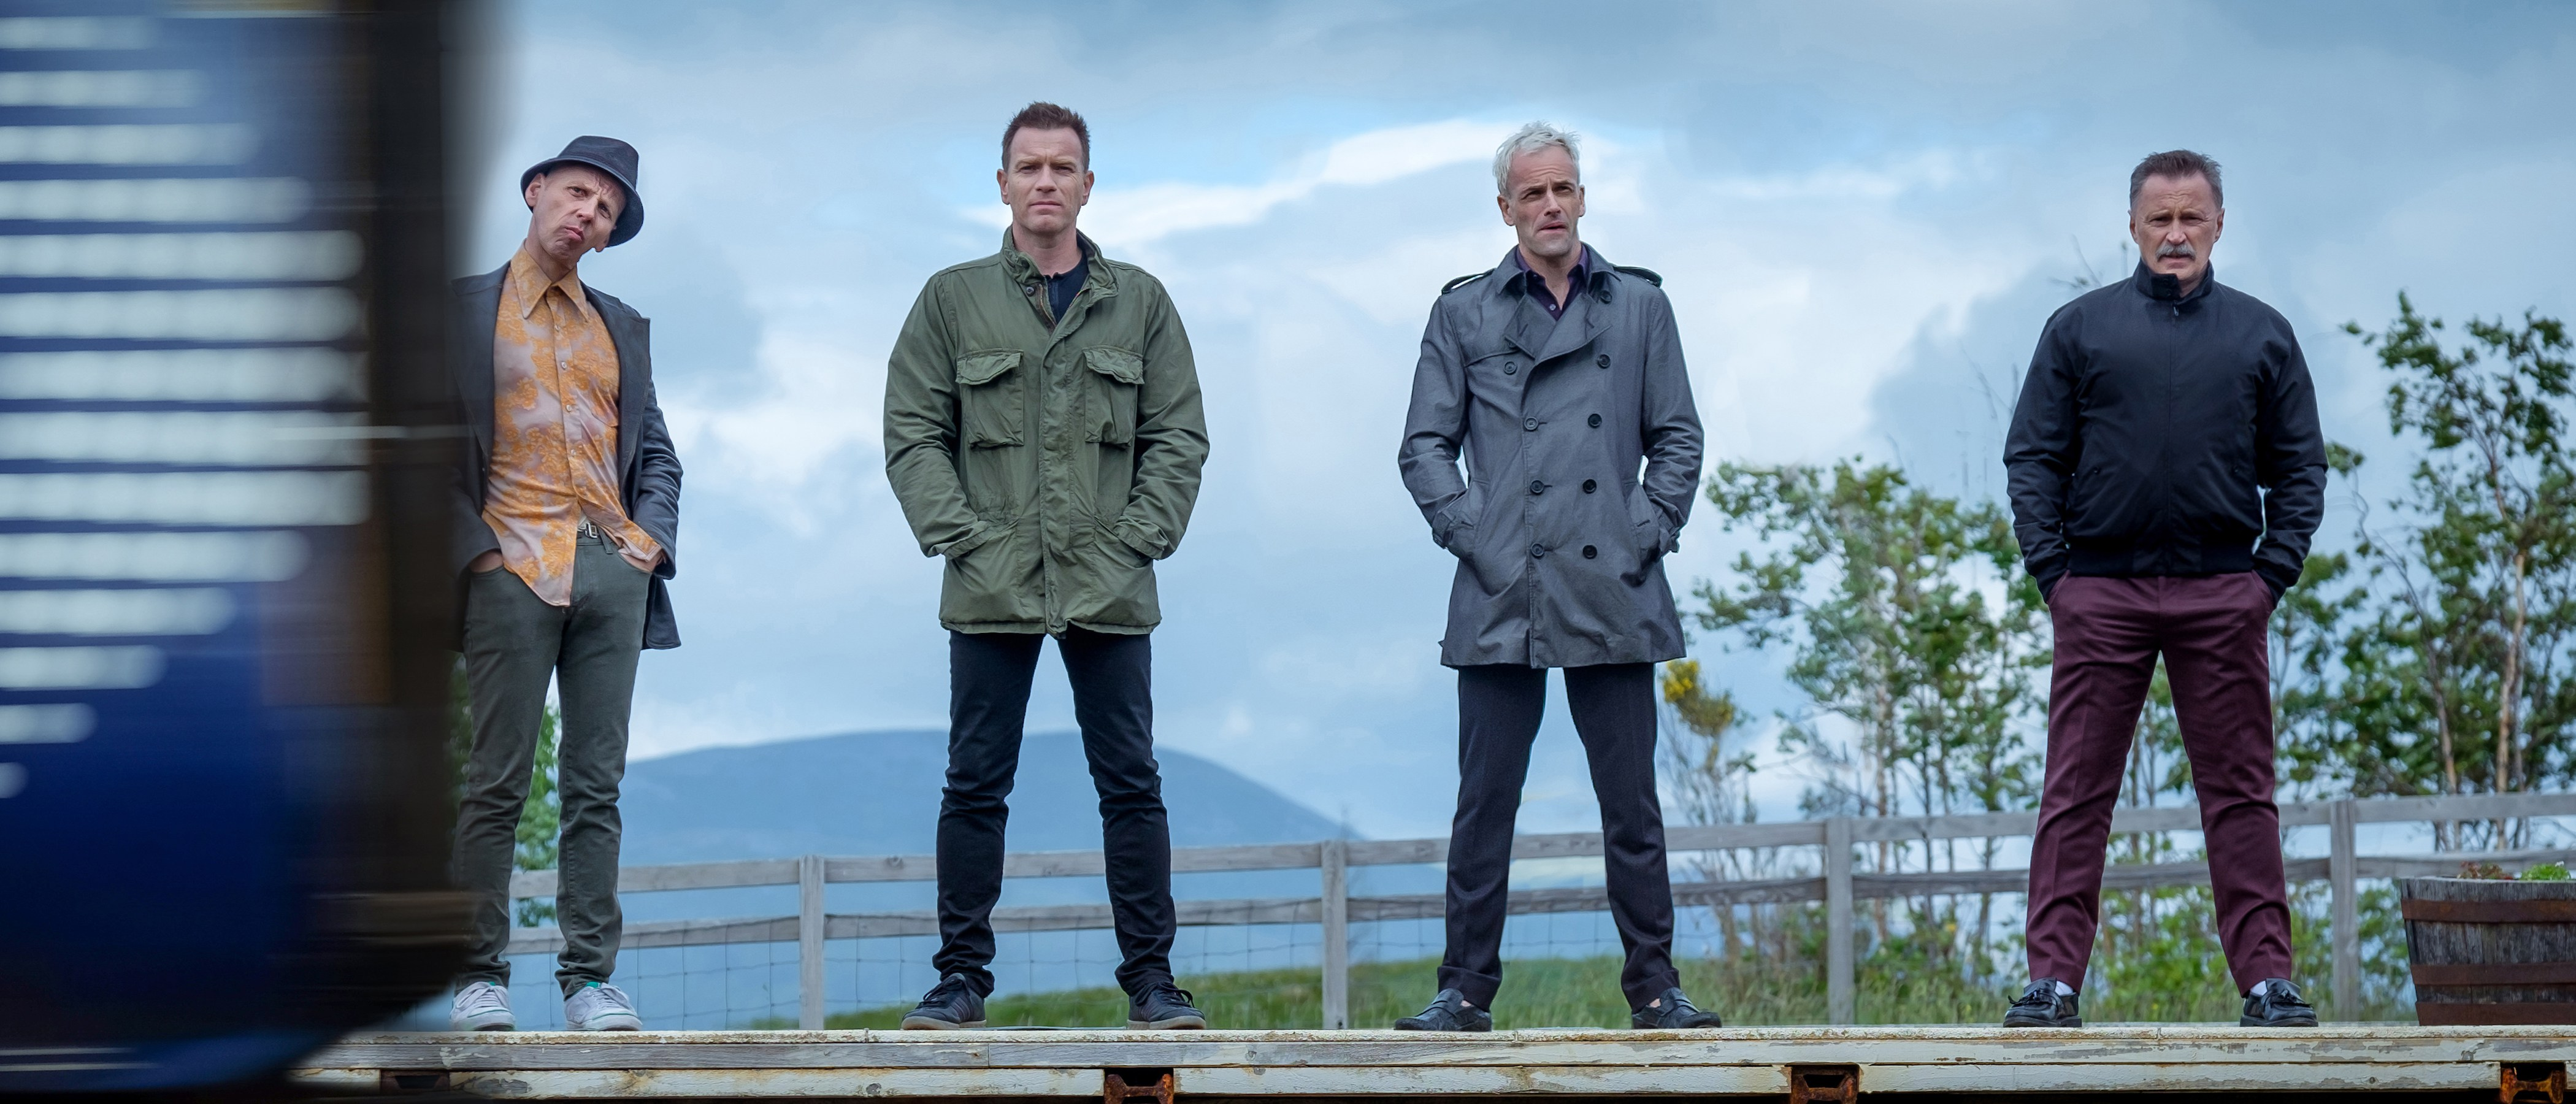 t2-trainspotting-header_8mjk_1.jpg